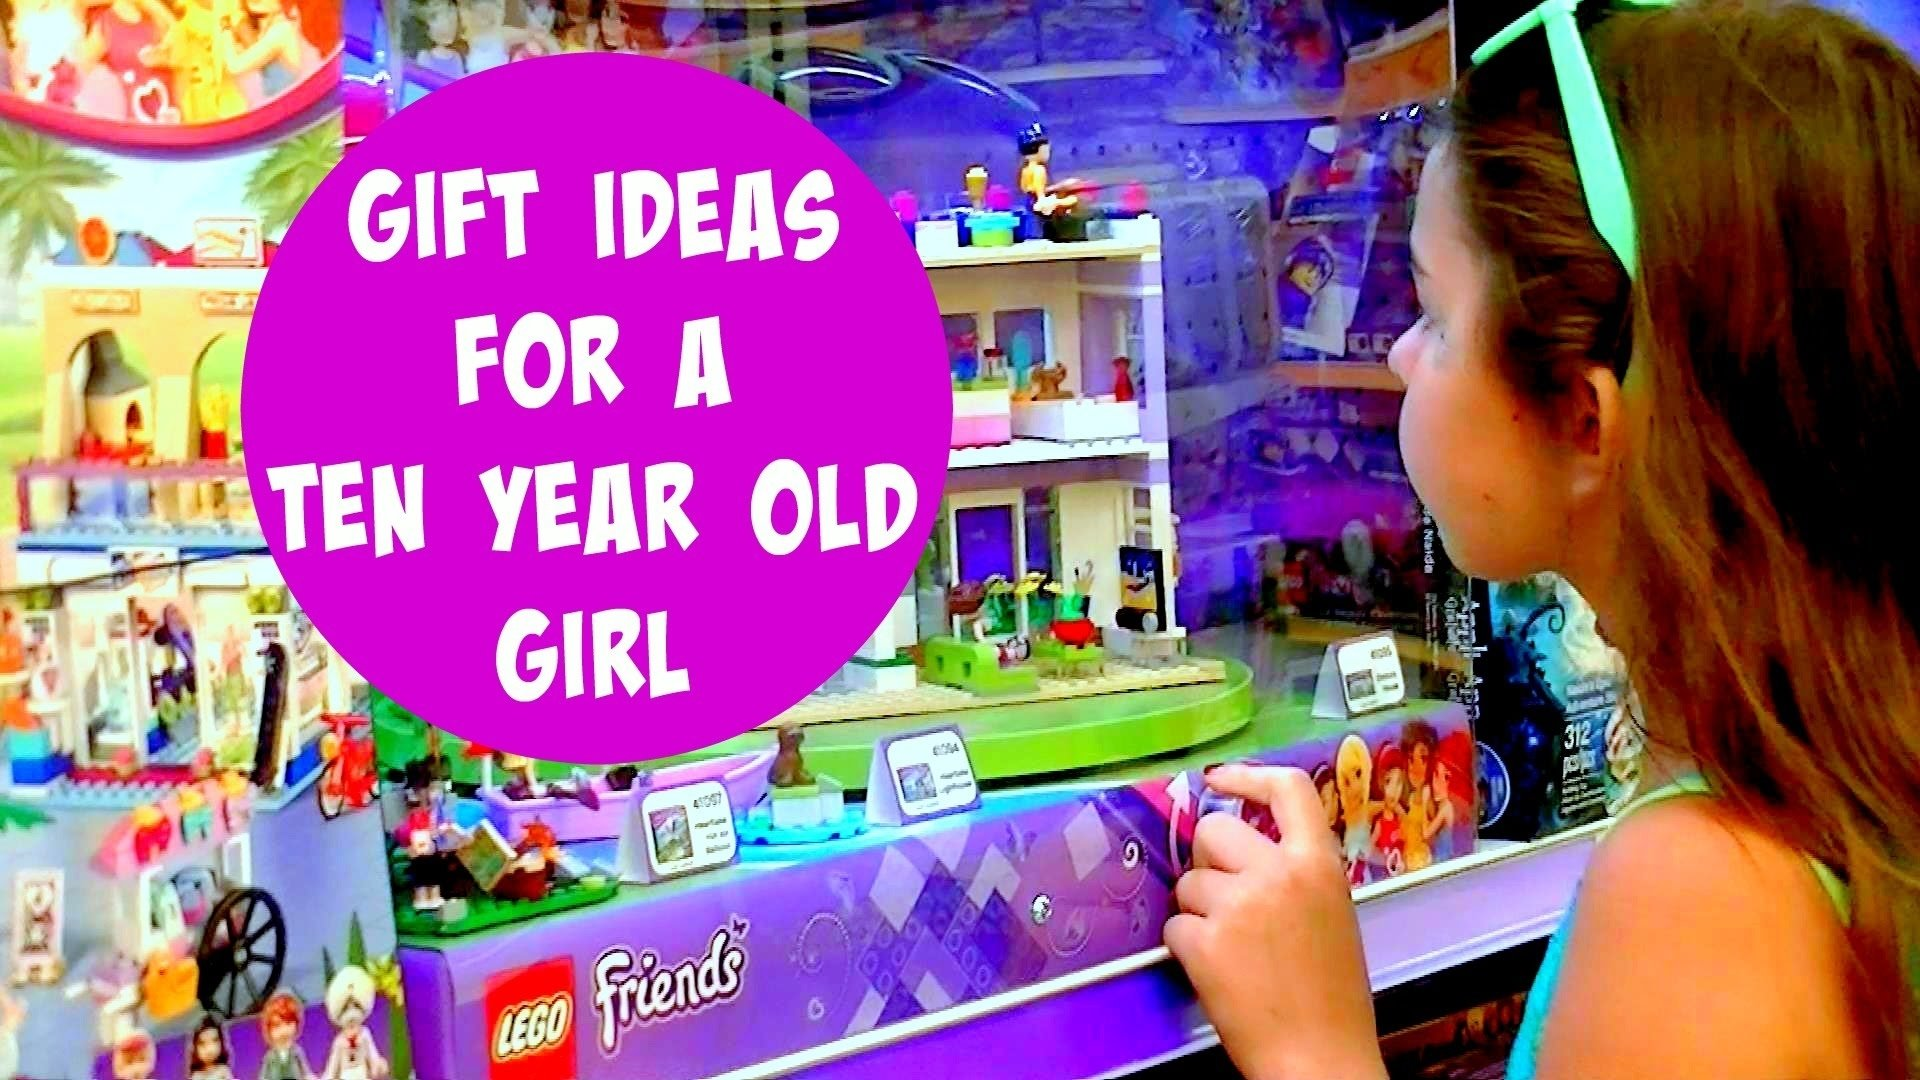 10 Attractive Gift Ideas For 10 Yr Old Girl birthday gift ideas for a 10 year old girl under 30 youtube 2020